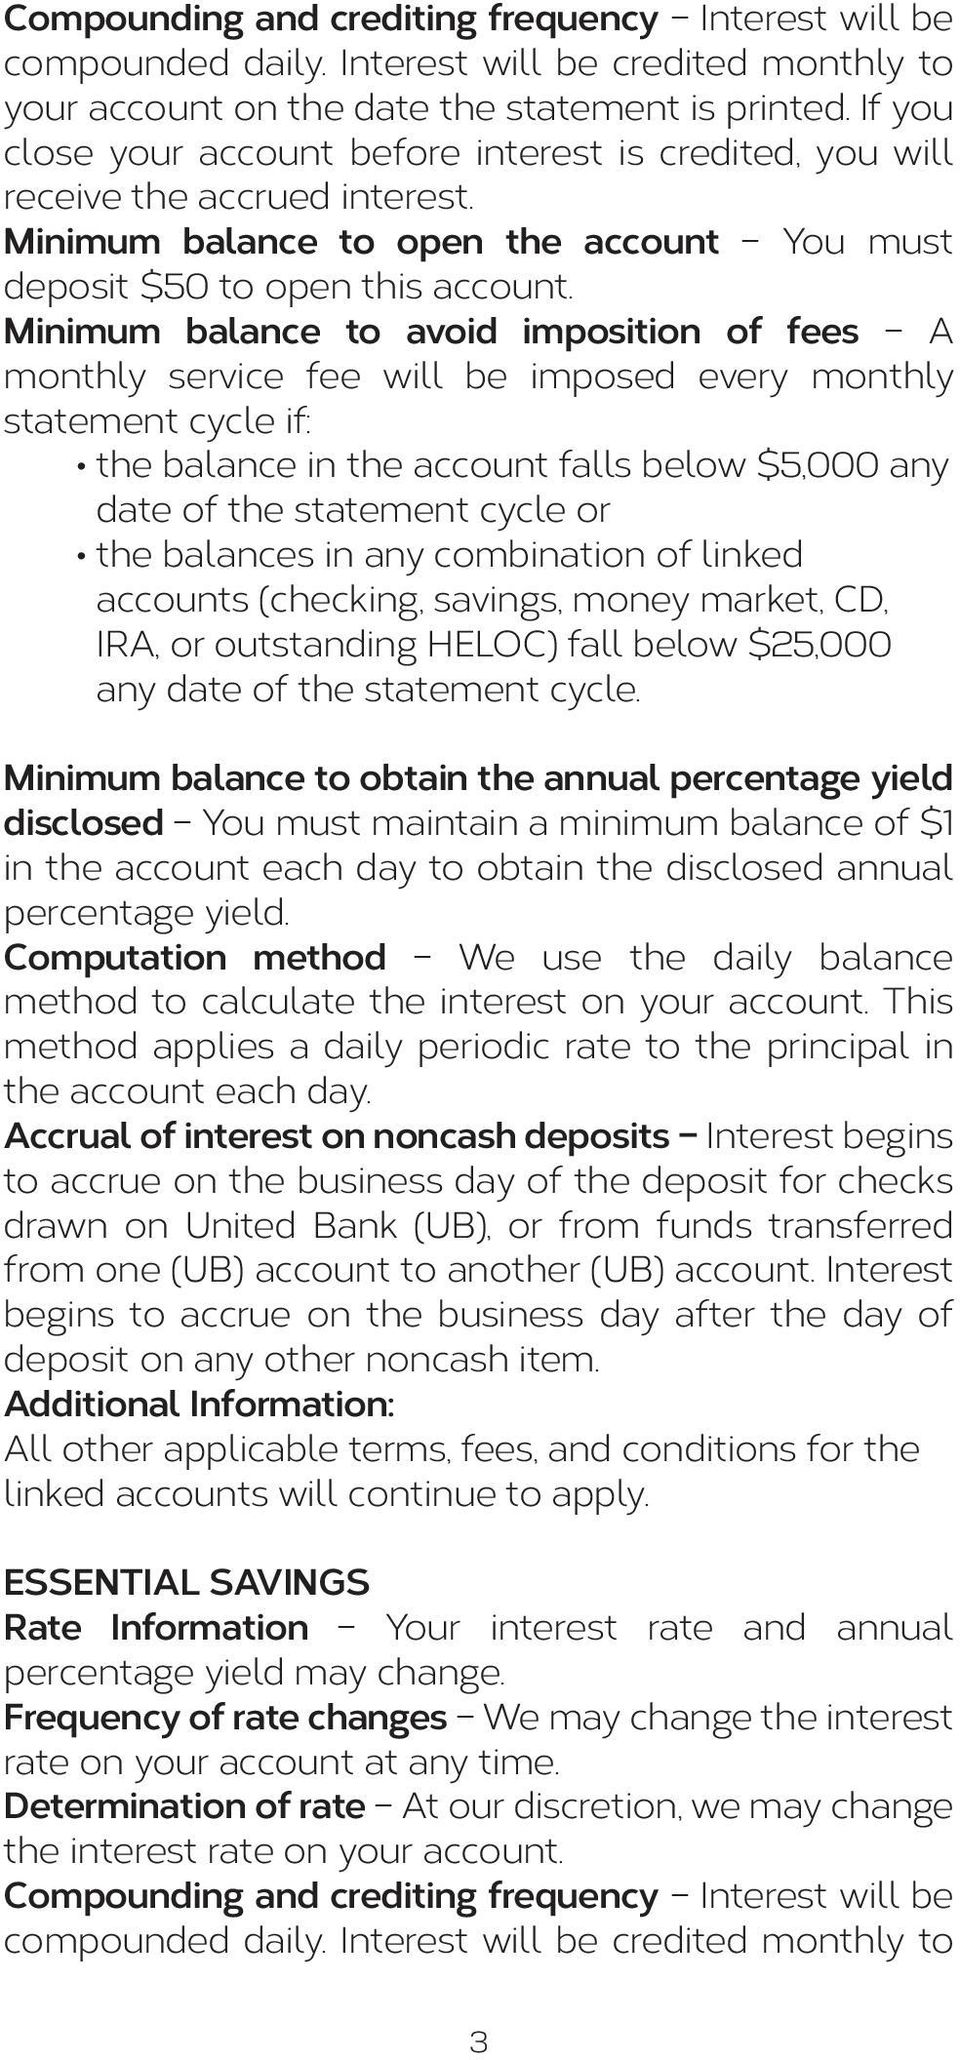 Minimum balance to avoid imposition of fees A monthly service fee will be imposed every monthly statement cycle if: the balance in the account falls below $5,000 any date of the statement cycle or